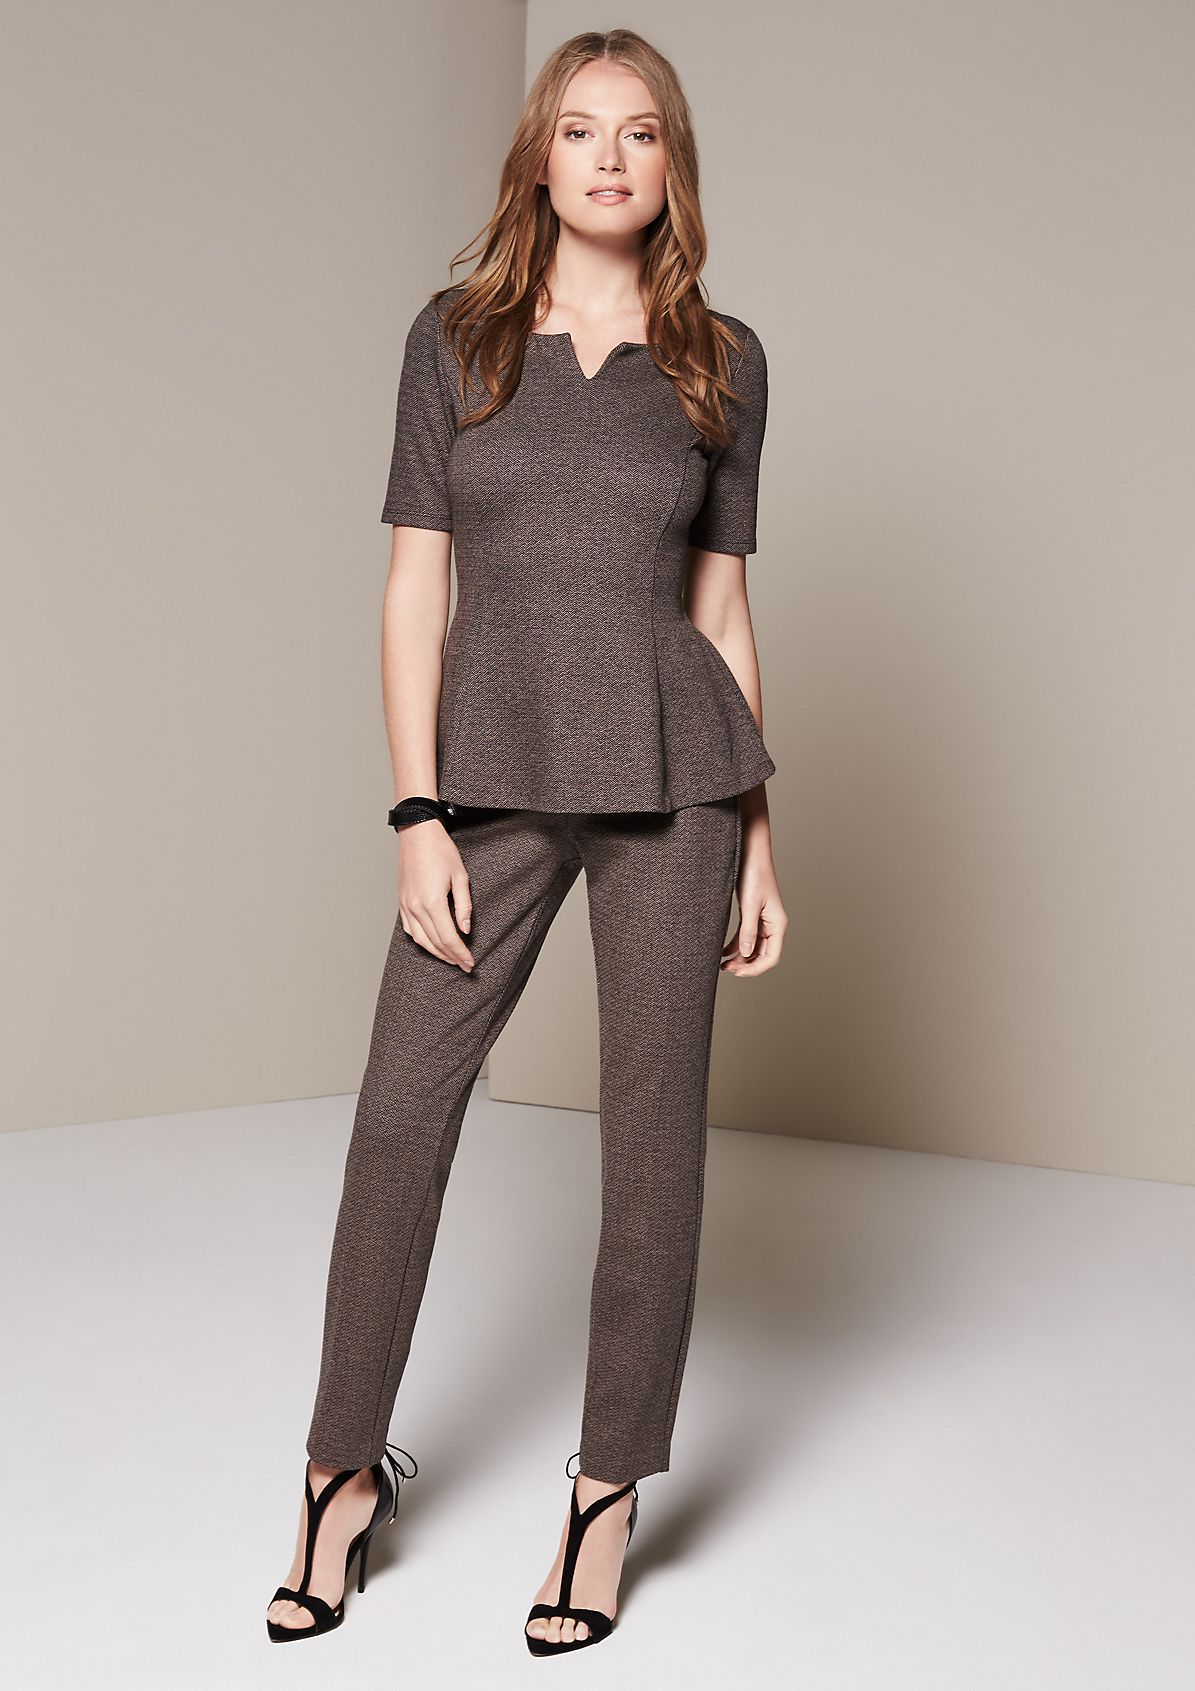 Extravagant short sleeve top in a tweed look from s.Oliver